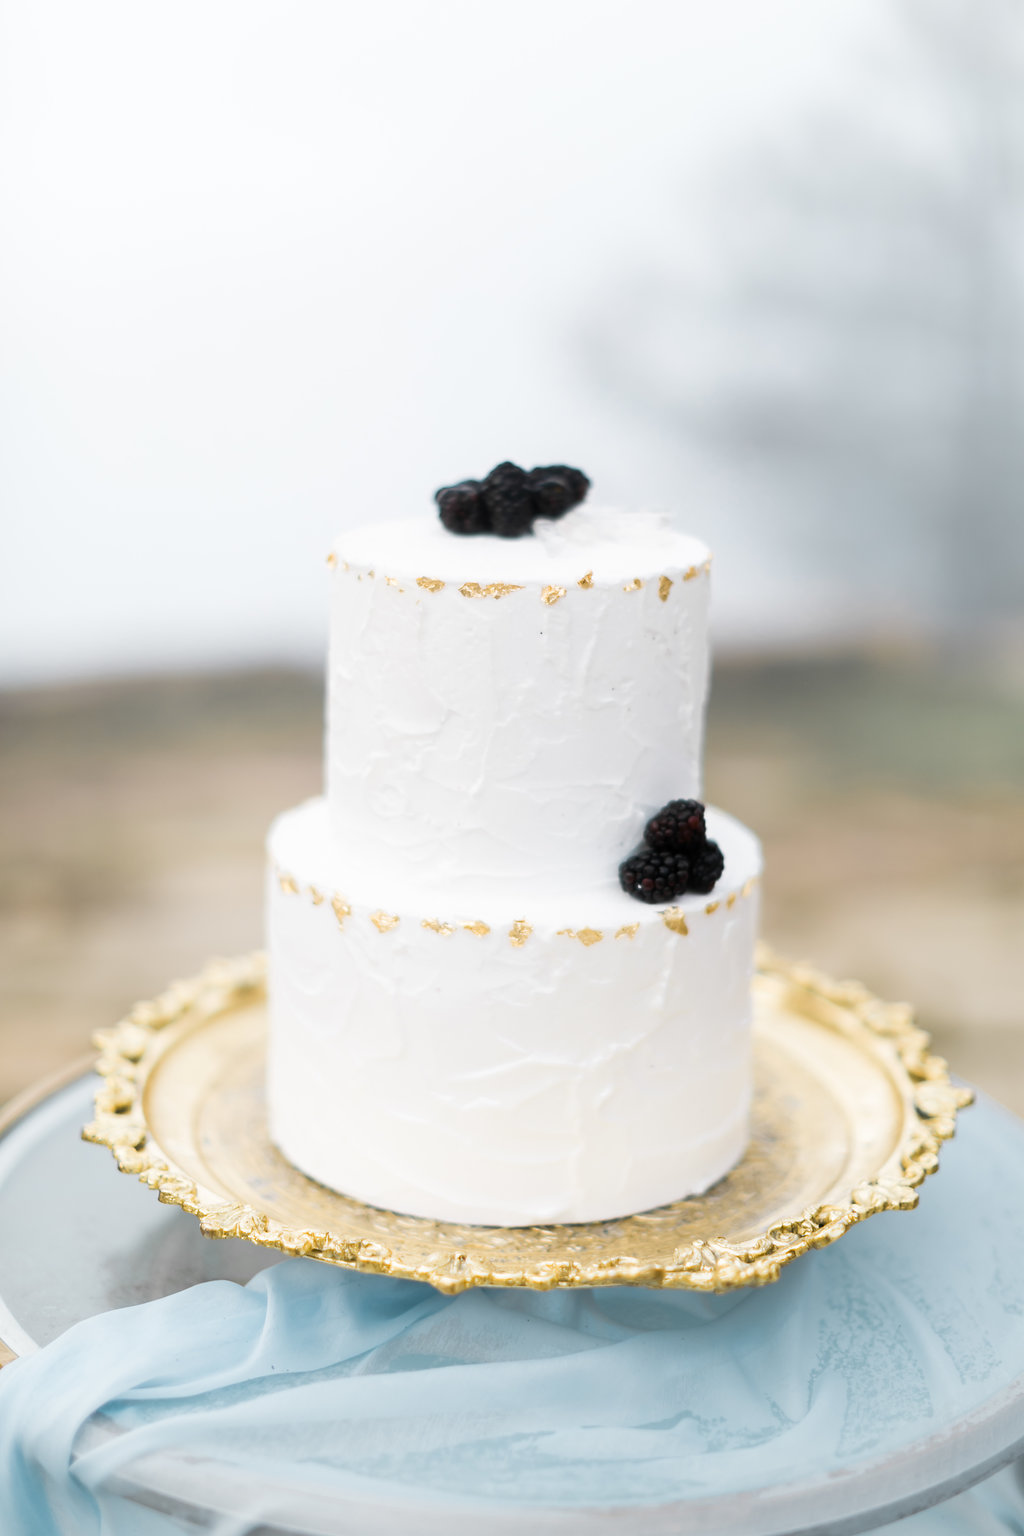 simple wedding cakes with gold - photo by Natalie Schutt http://ruffledblog.com/misty-dream-vow-renewal-at-knapps-castle